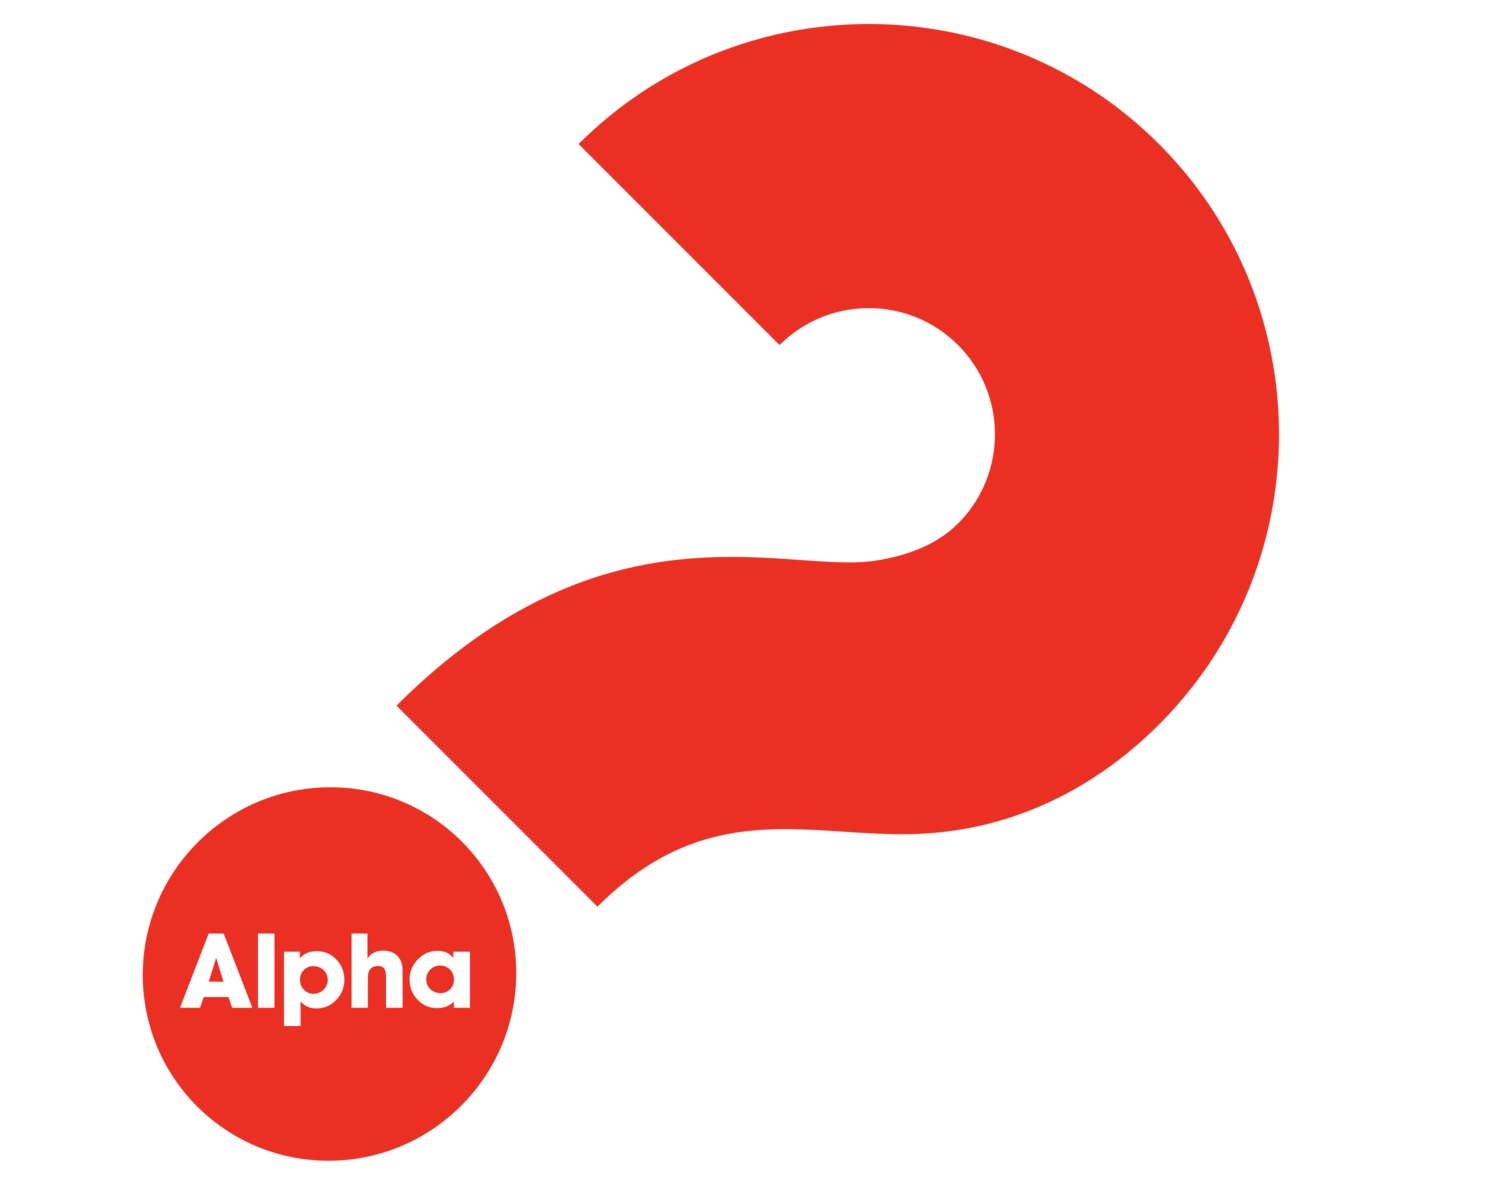 alpha-logo-set-7basic.png